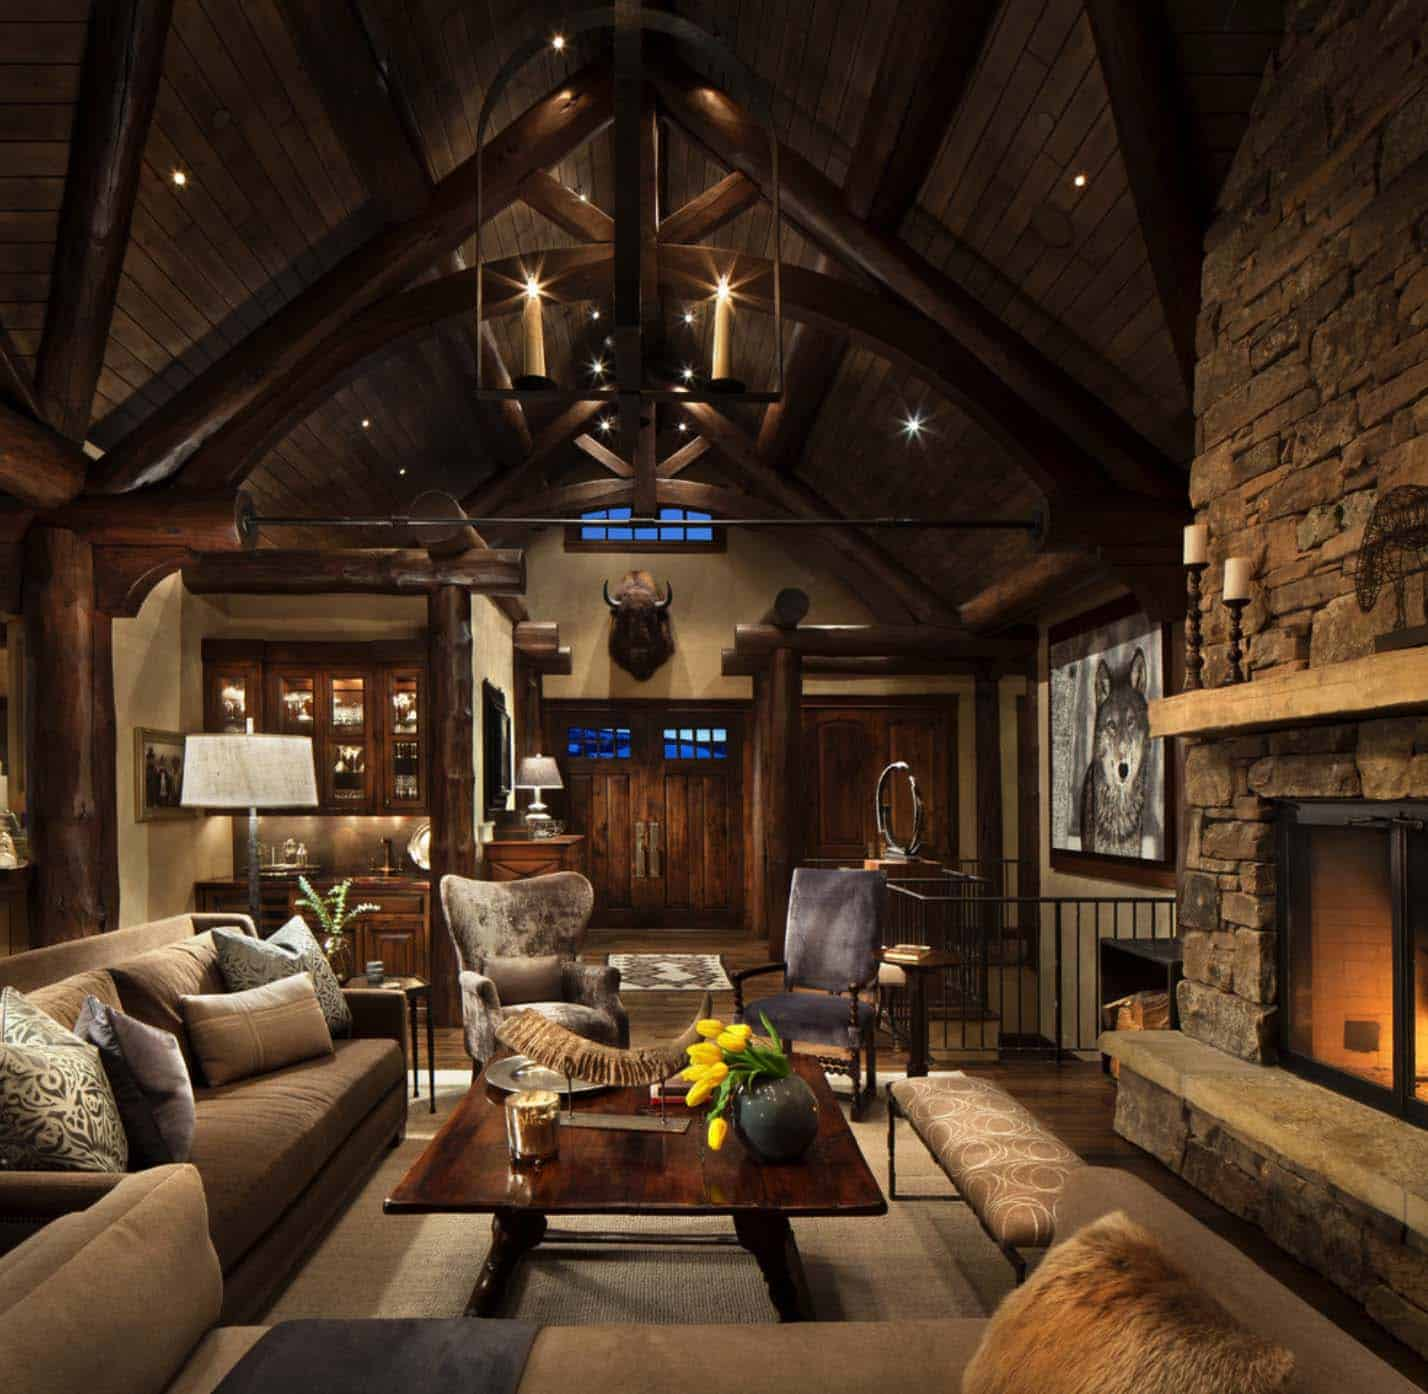 Home Interior Design: Exquisite Mountain Home Remodel Mixes Rustic With Modern